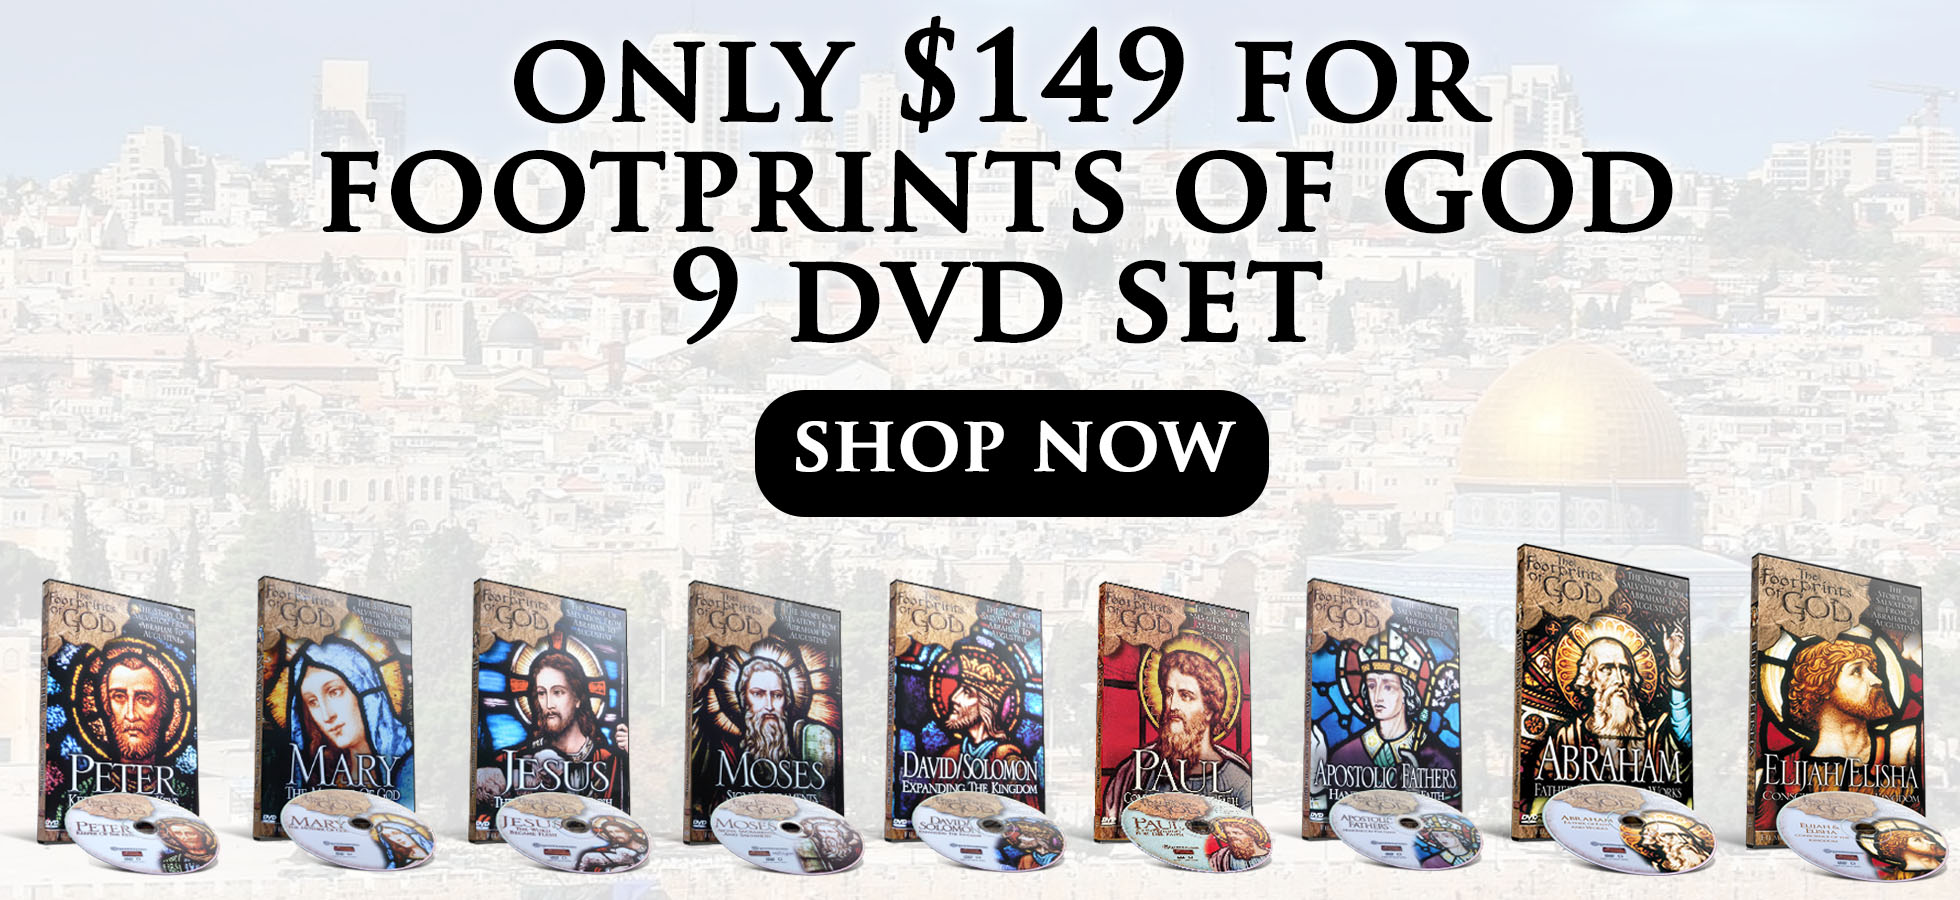 Only $149 for Footprints of God 9 DVD Set